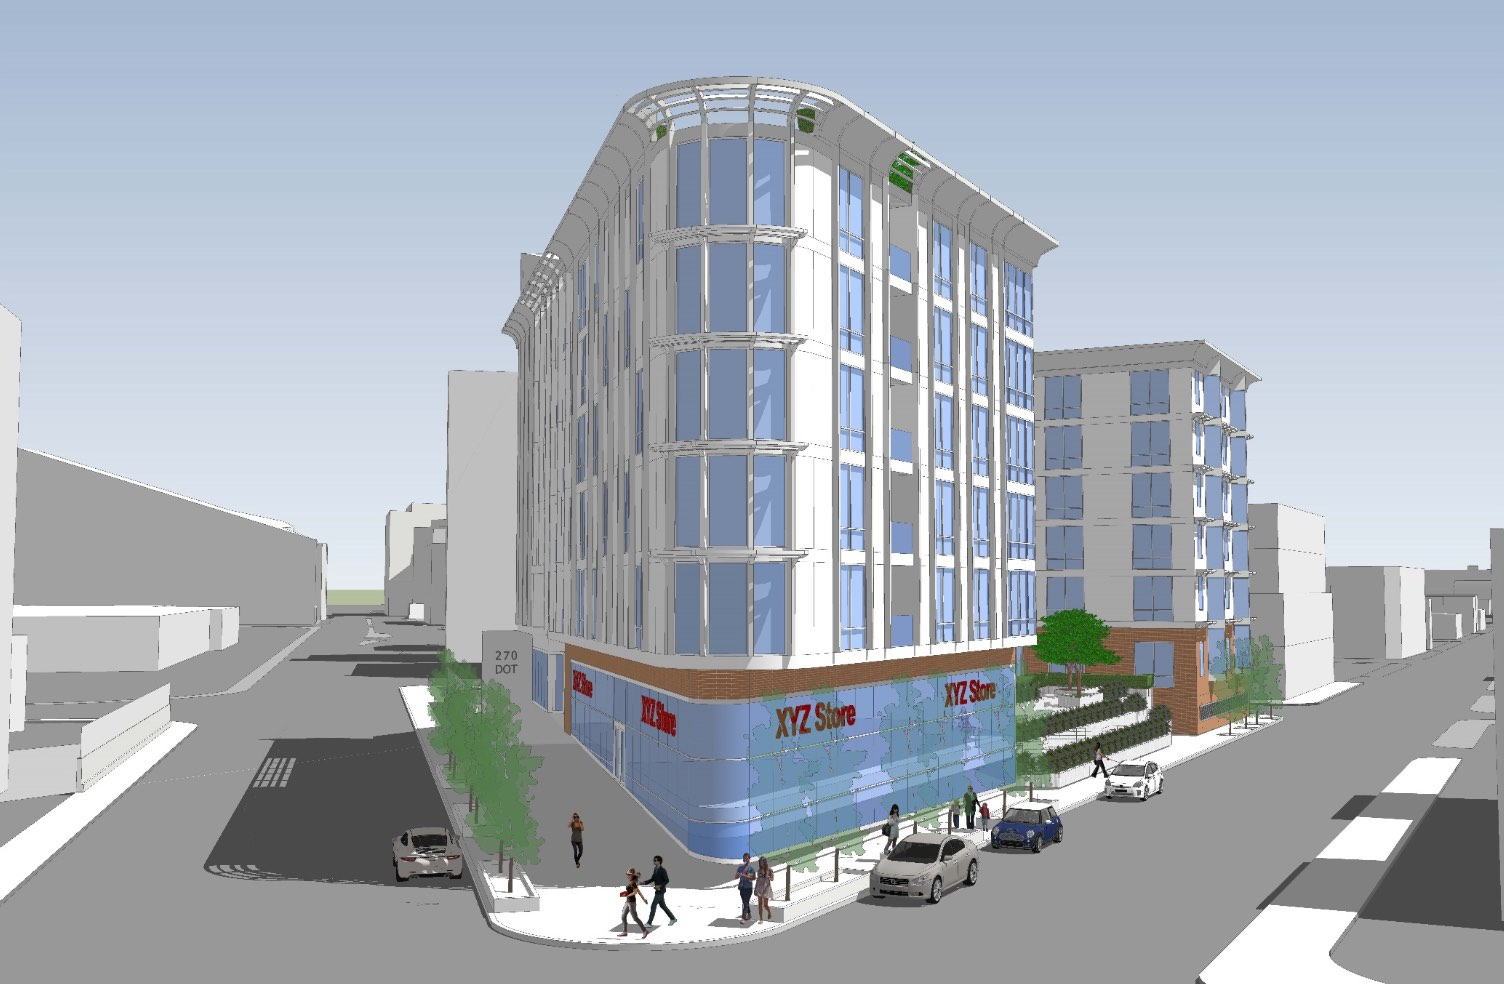 270 dorchester avenue the chandlery south boston southie broadway village residential retail mbta red line proposed development